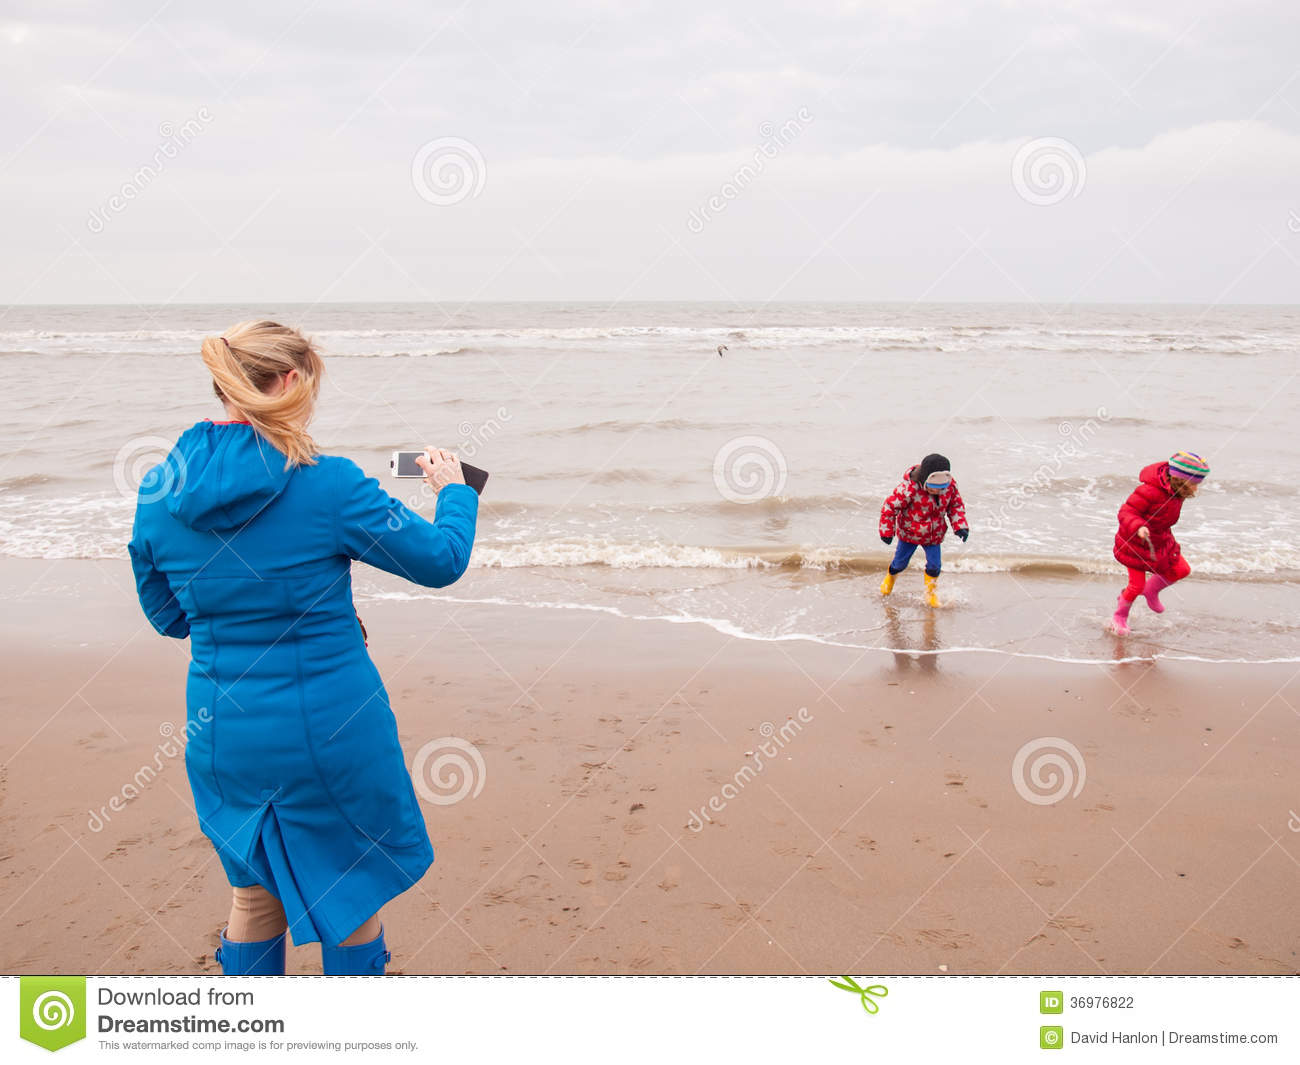 af18f1a4f9 Woman photographing small boy and girl in winter clothing and rubber boots  on a winter beach with a smart phone